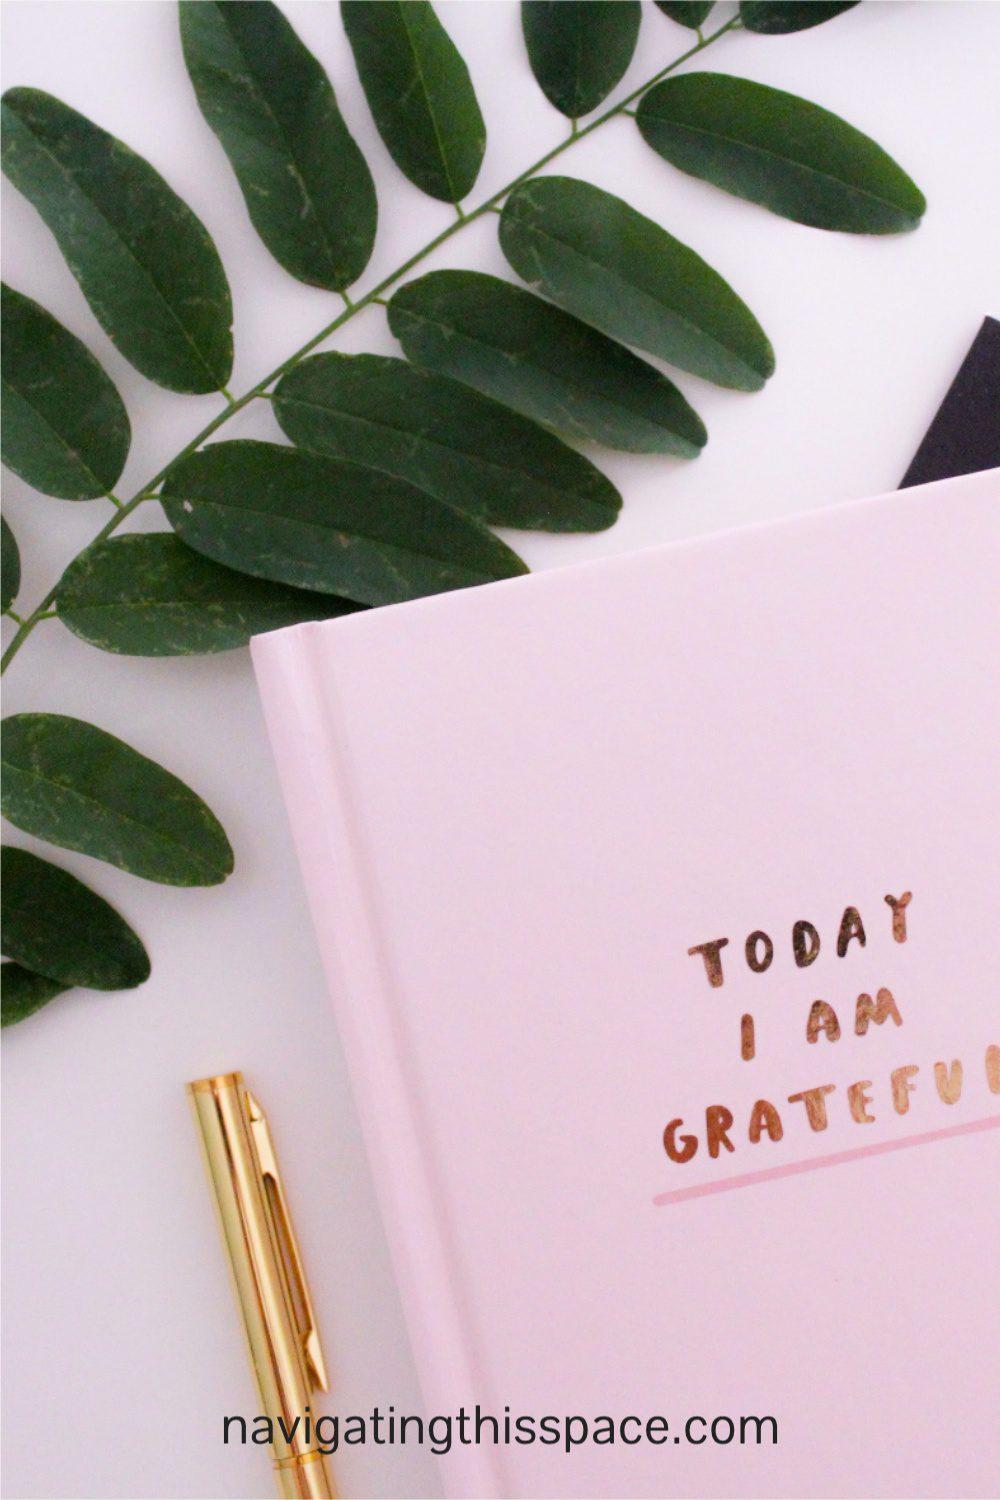 Today I Am Grateful journal notebook with a gold pen